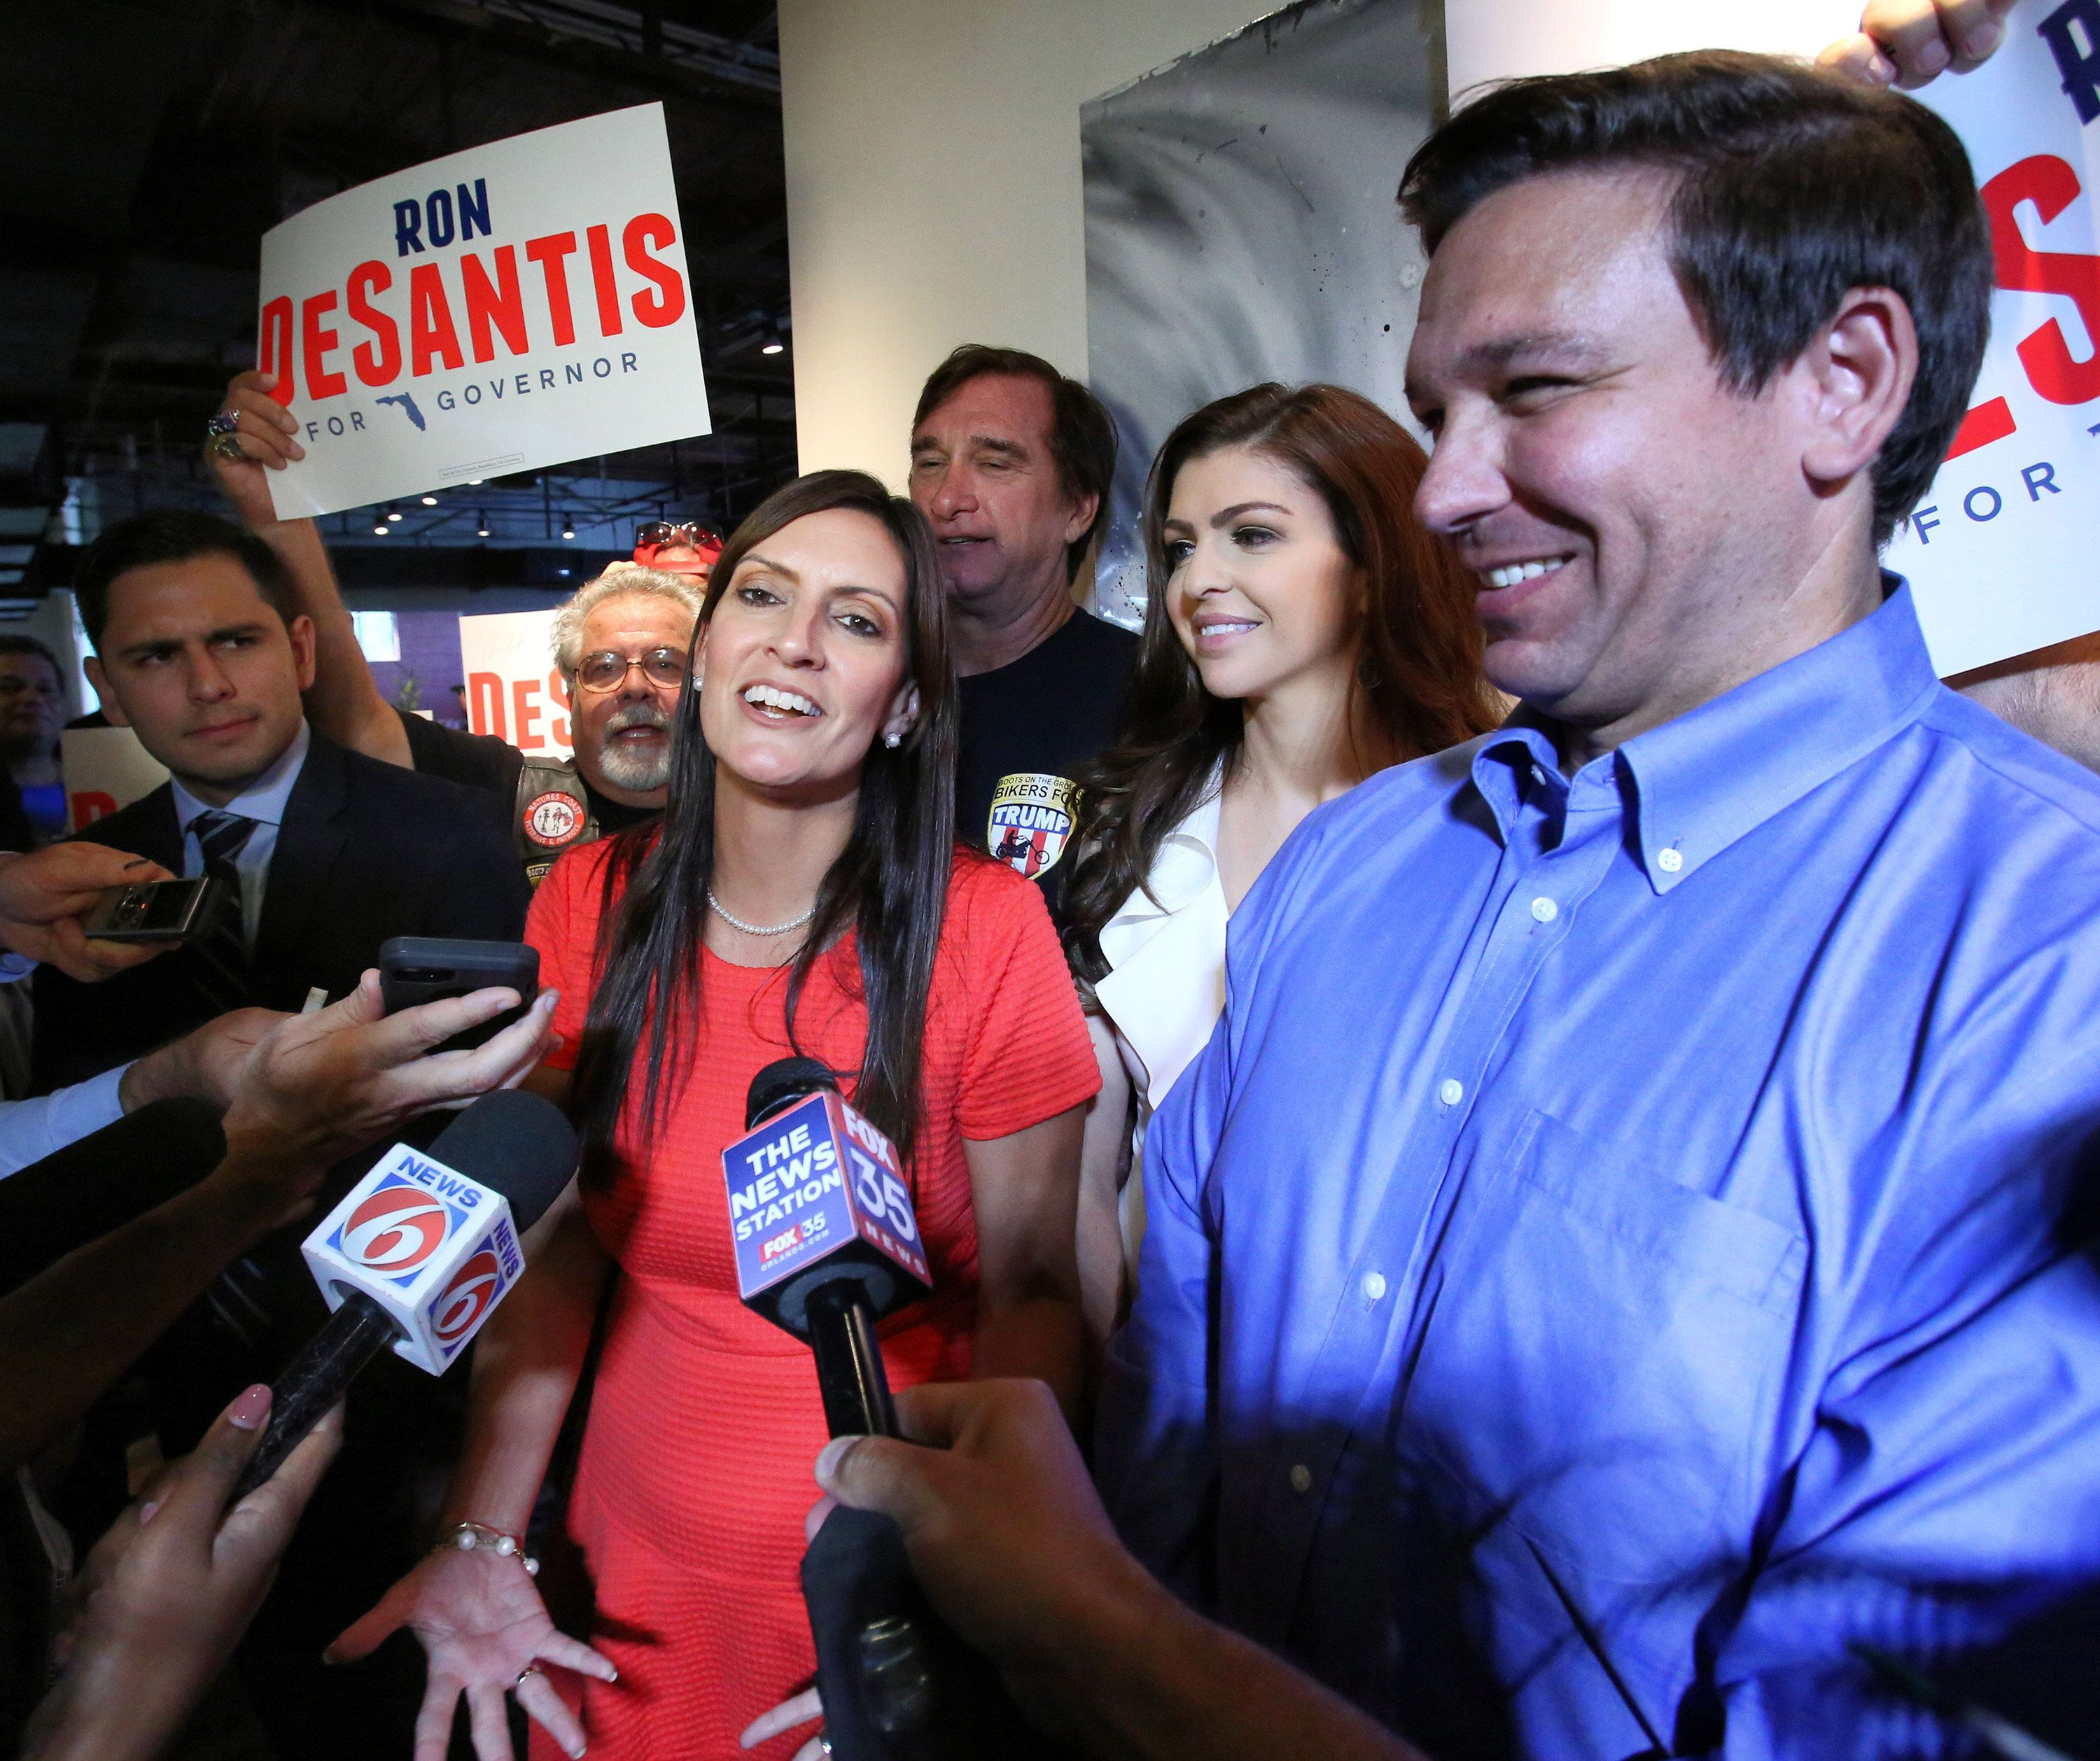 Putting Jeanette Nuñez on the ticket with Ron DeSantis is the oldest trick in the book.